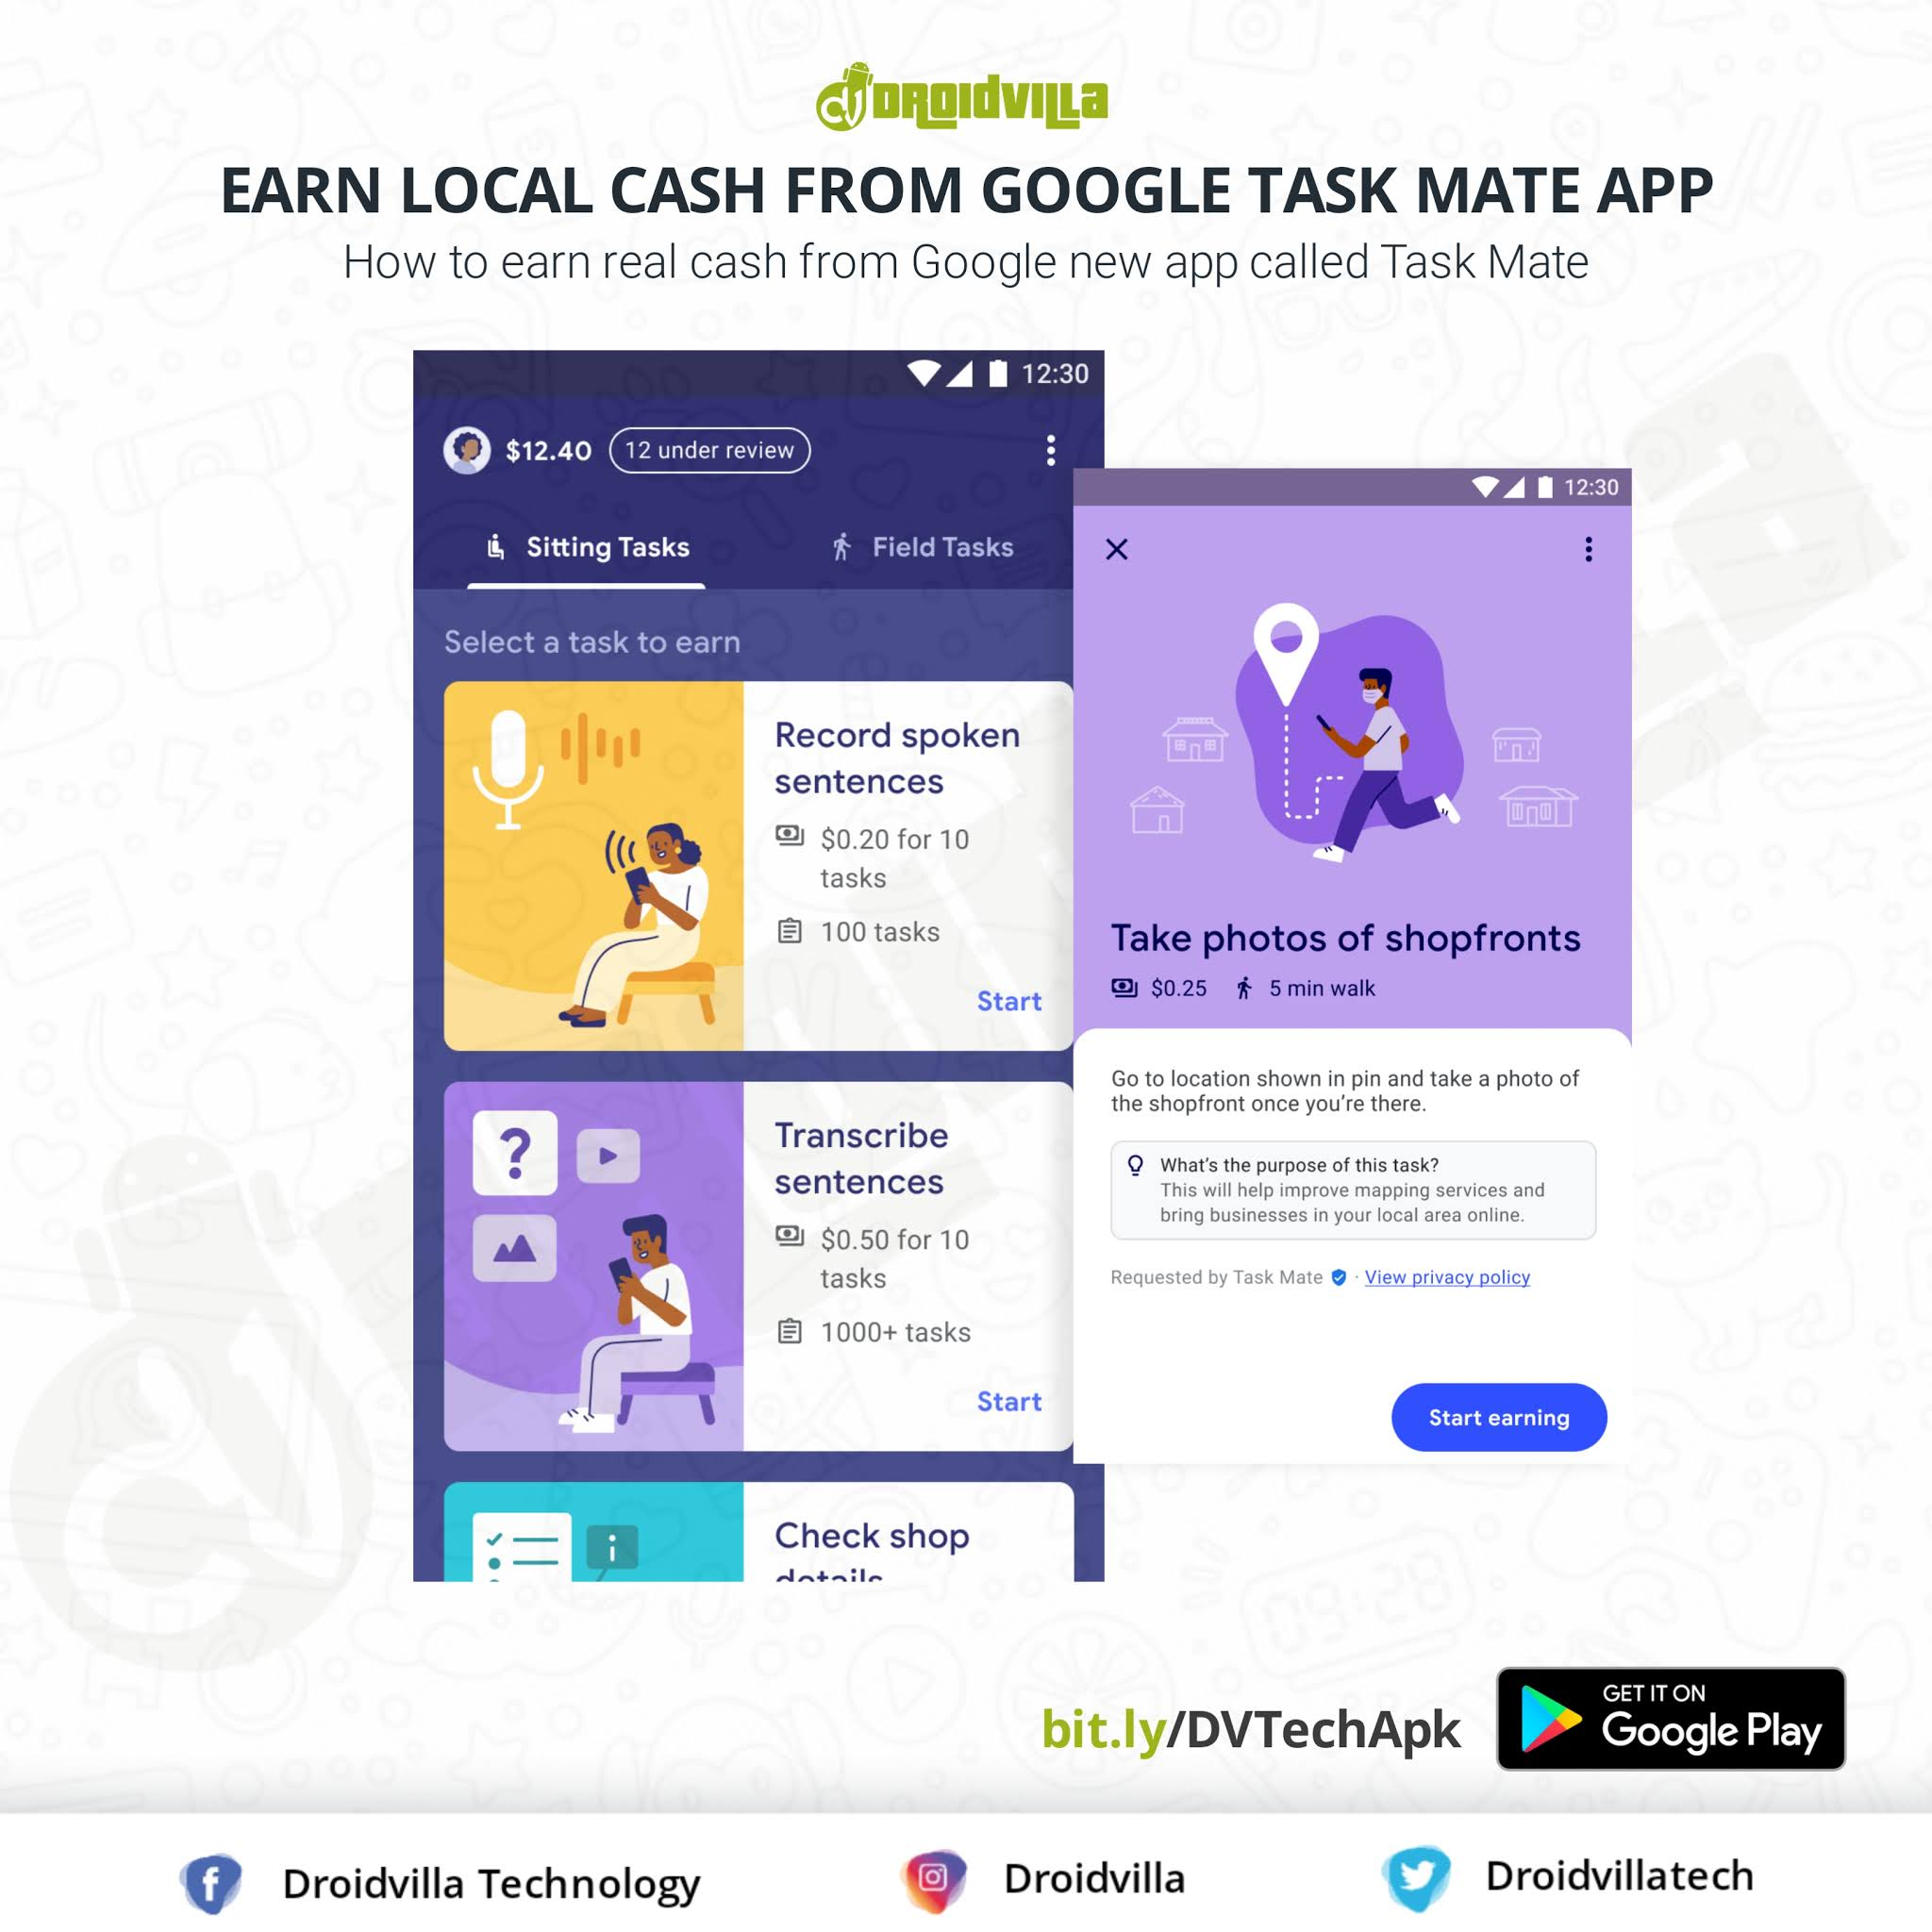 How to earn real cash from Google new app called Task Mate